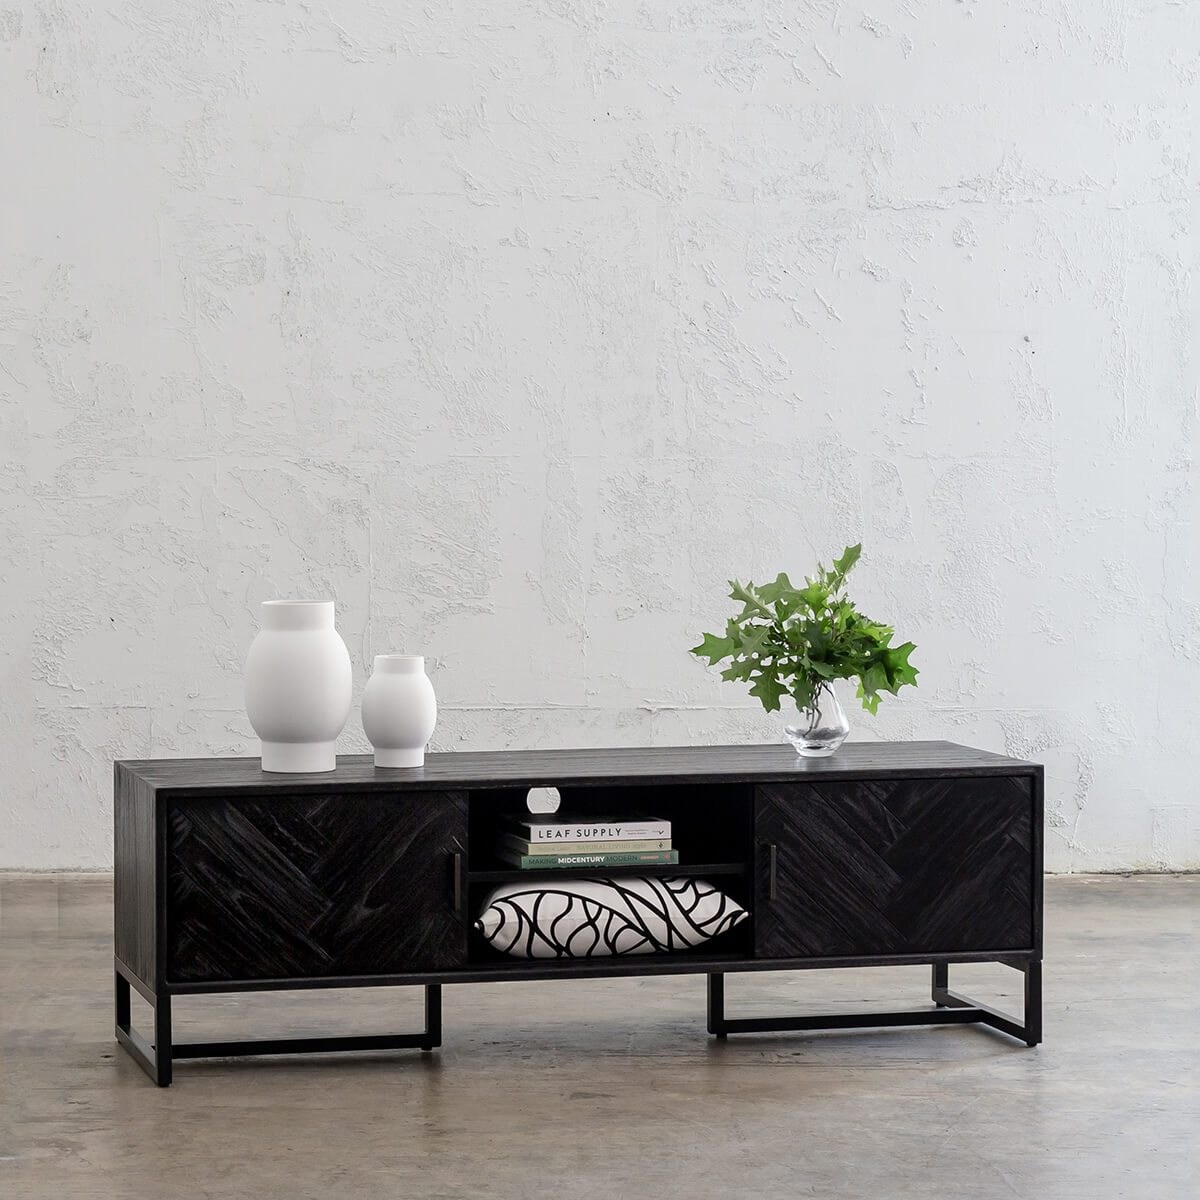 MAXIM PARQUETRY HERRINGBONE ENTERTAINMENT UNIT  |  BLACK TV UNIT  |  LOUNGE SIDEBOARD